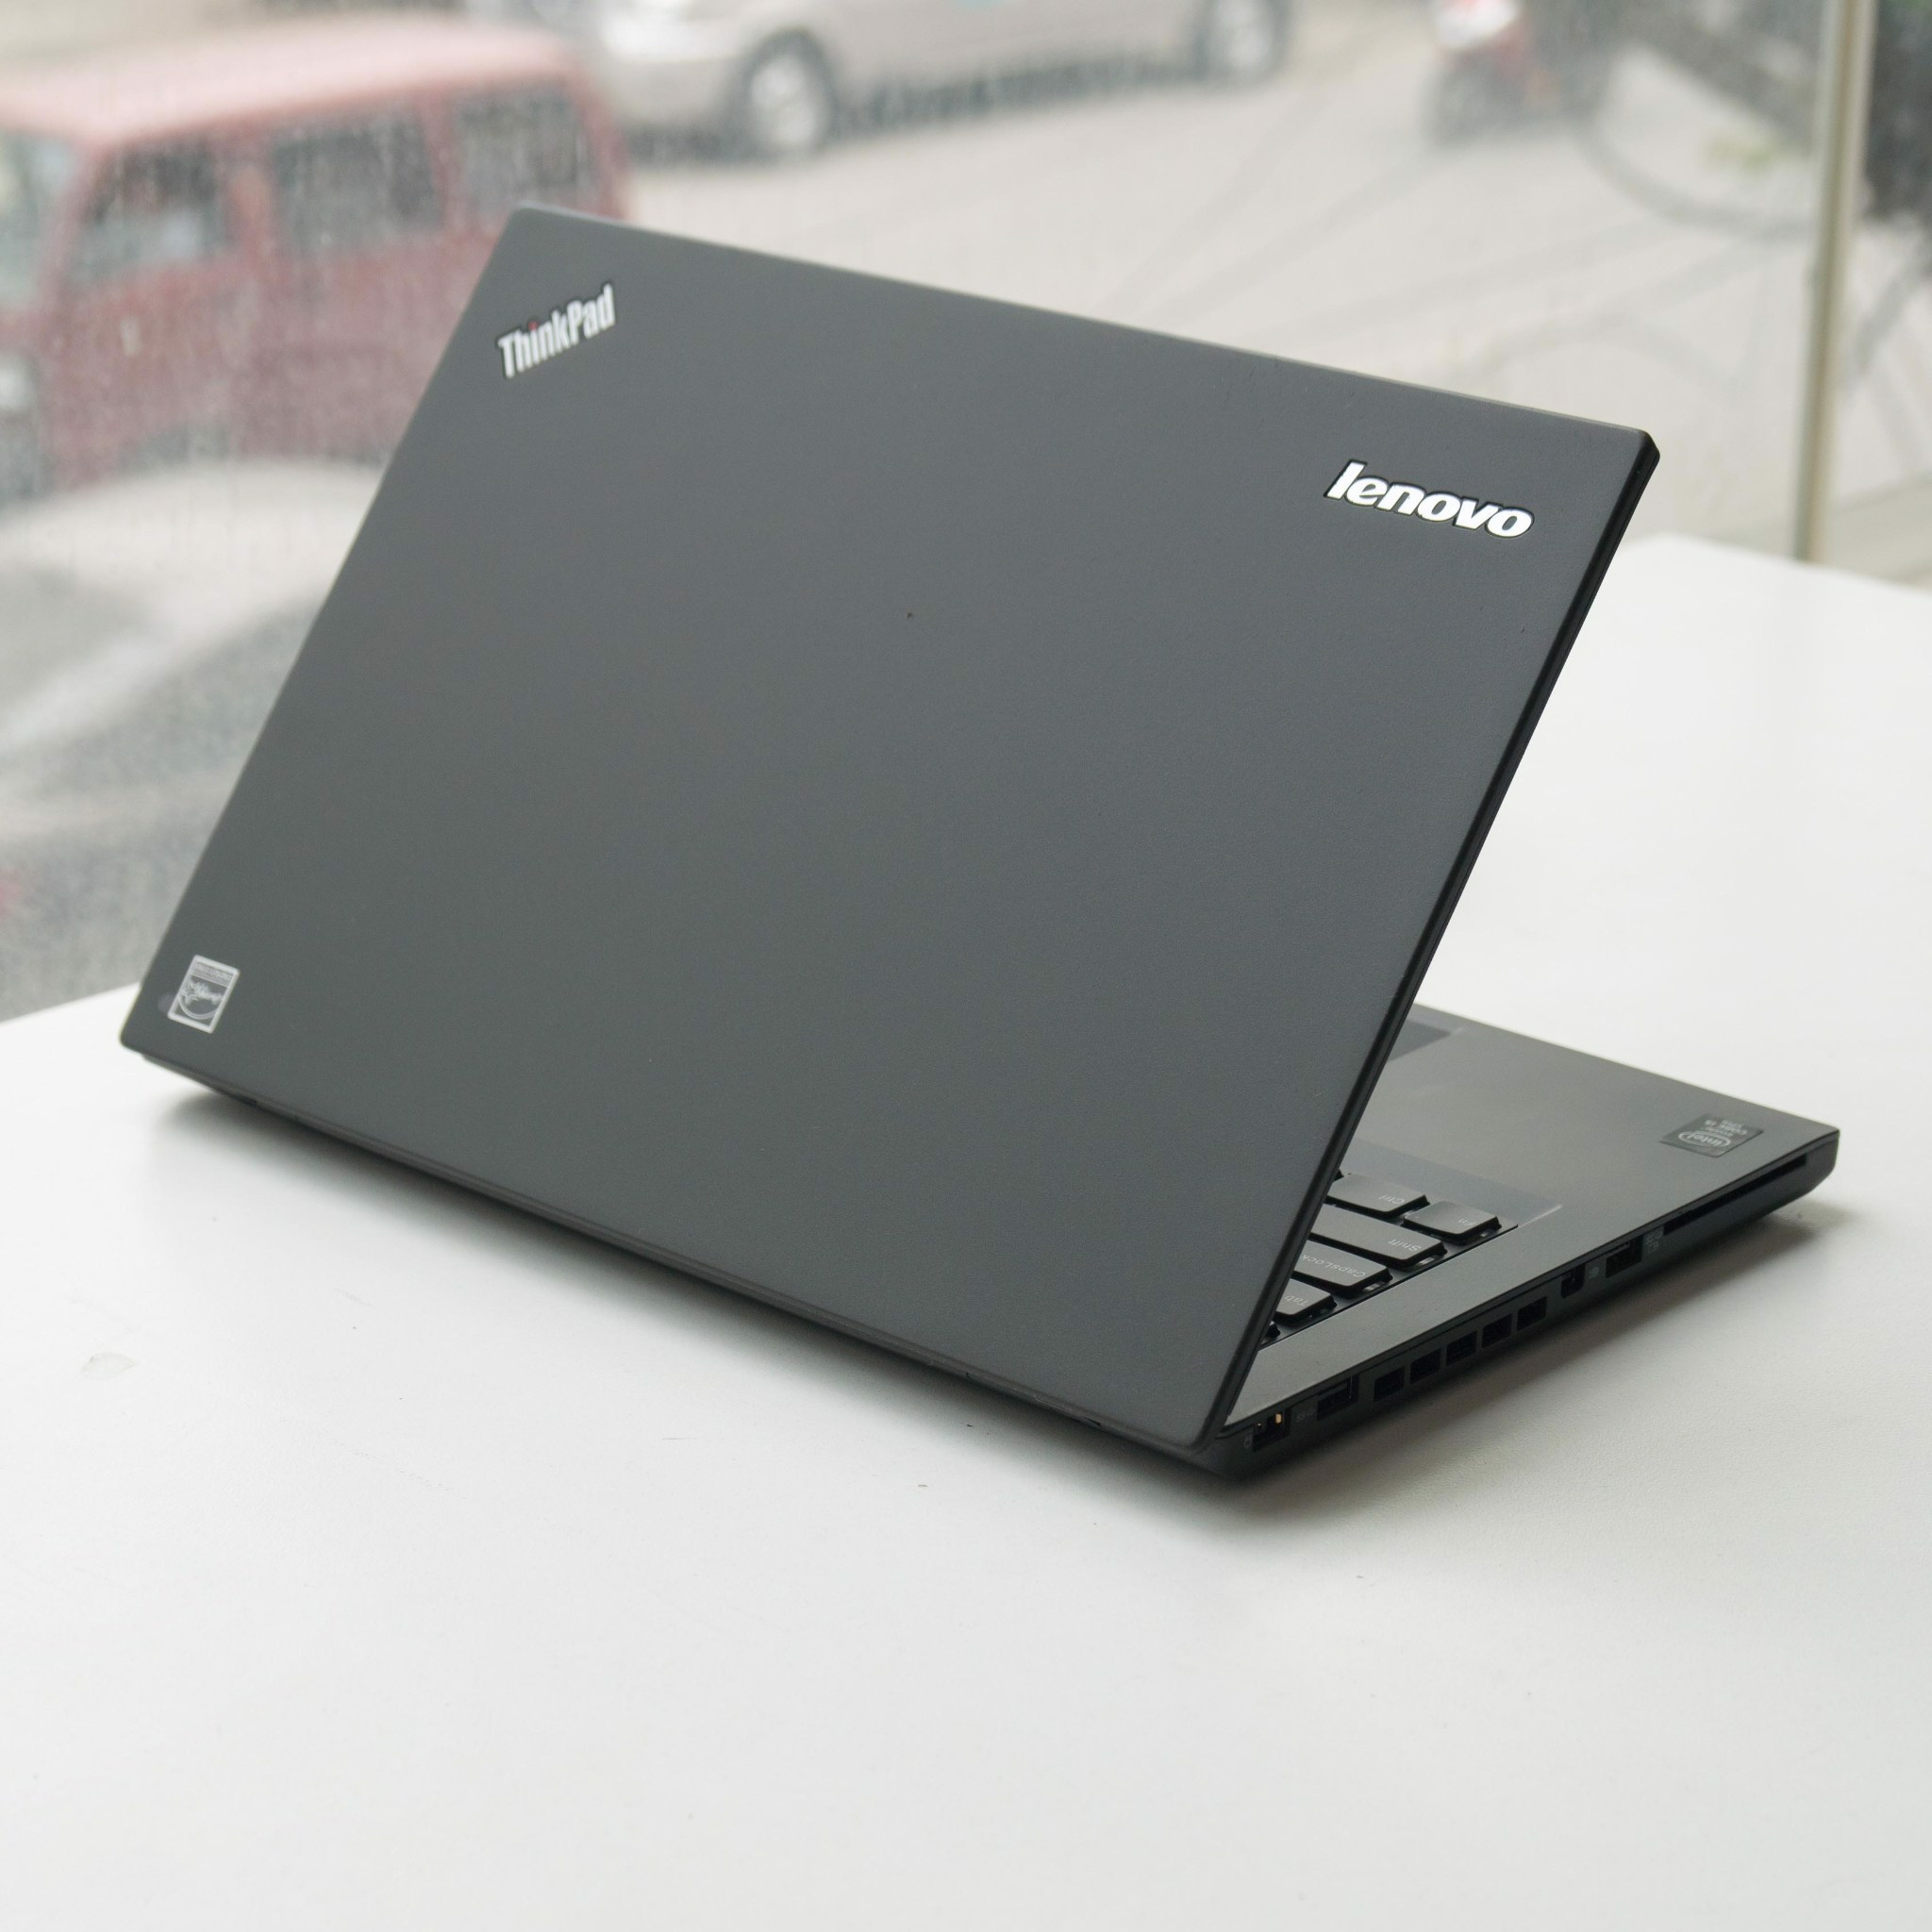 Lenovo Thinkpad T450s Core i7-5600u